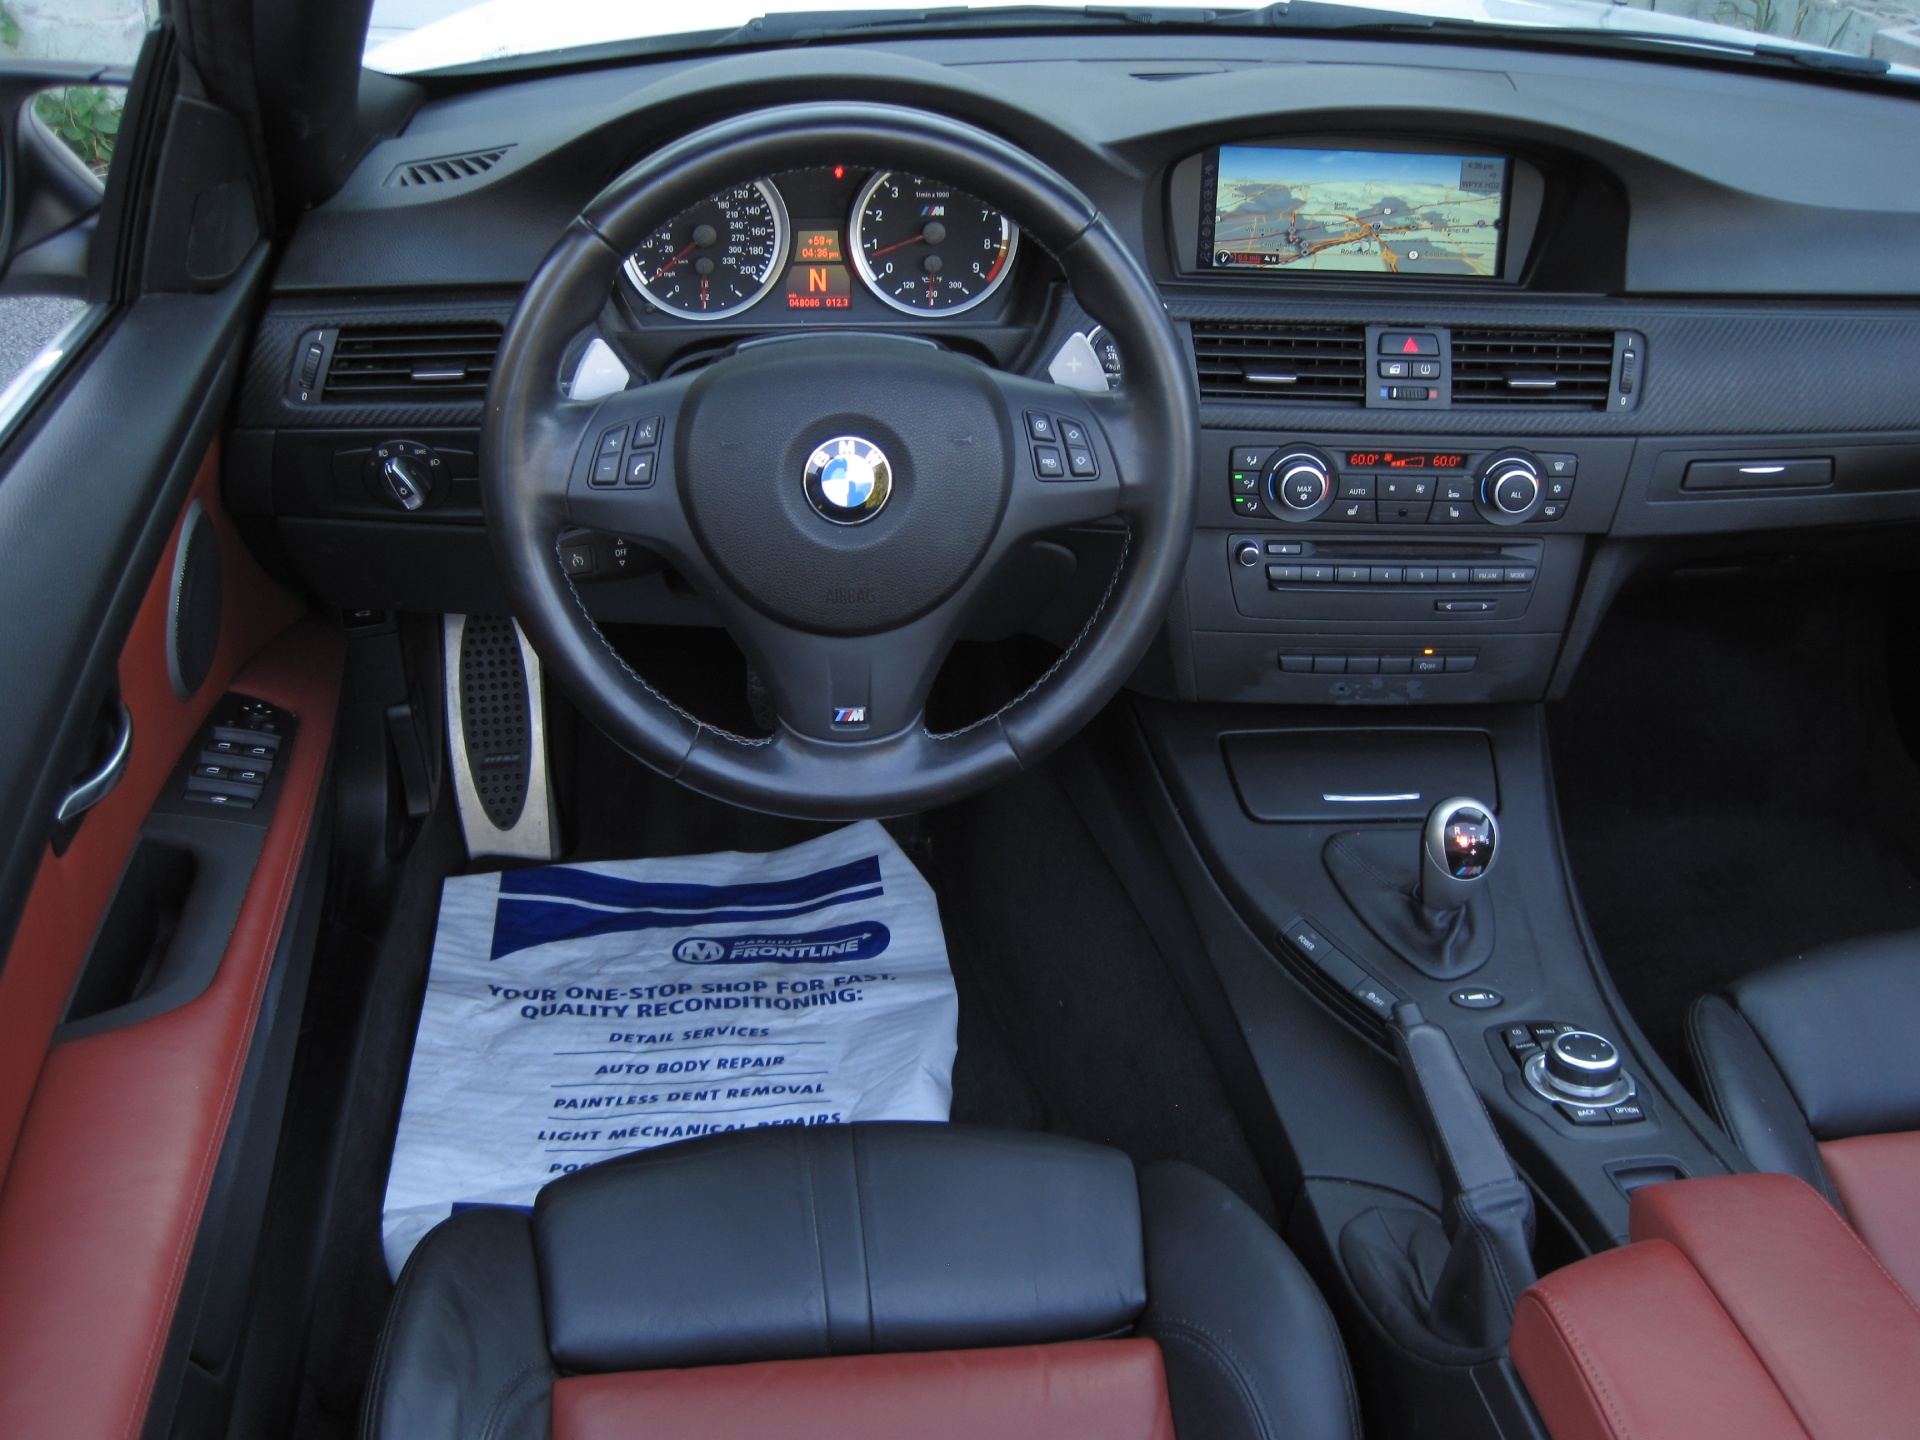 convertible near bmw stock sale htm used westport ct for c l